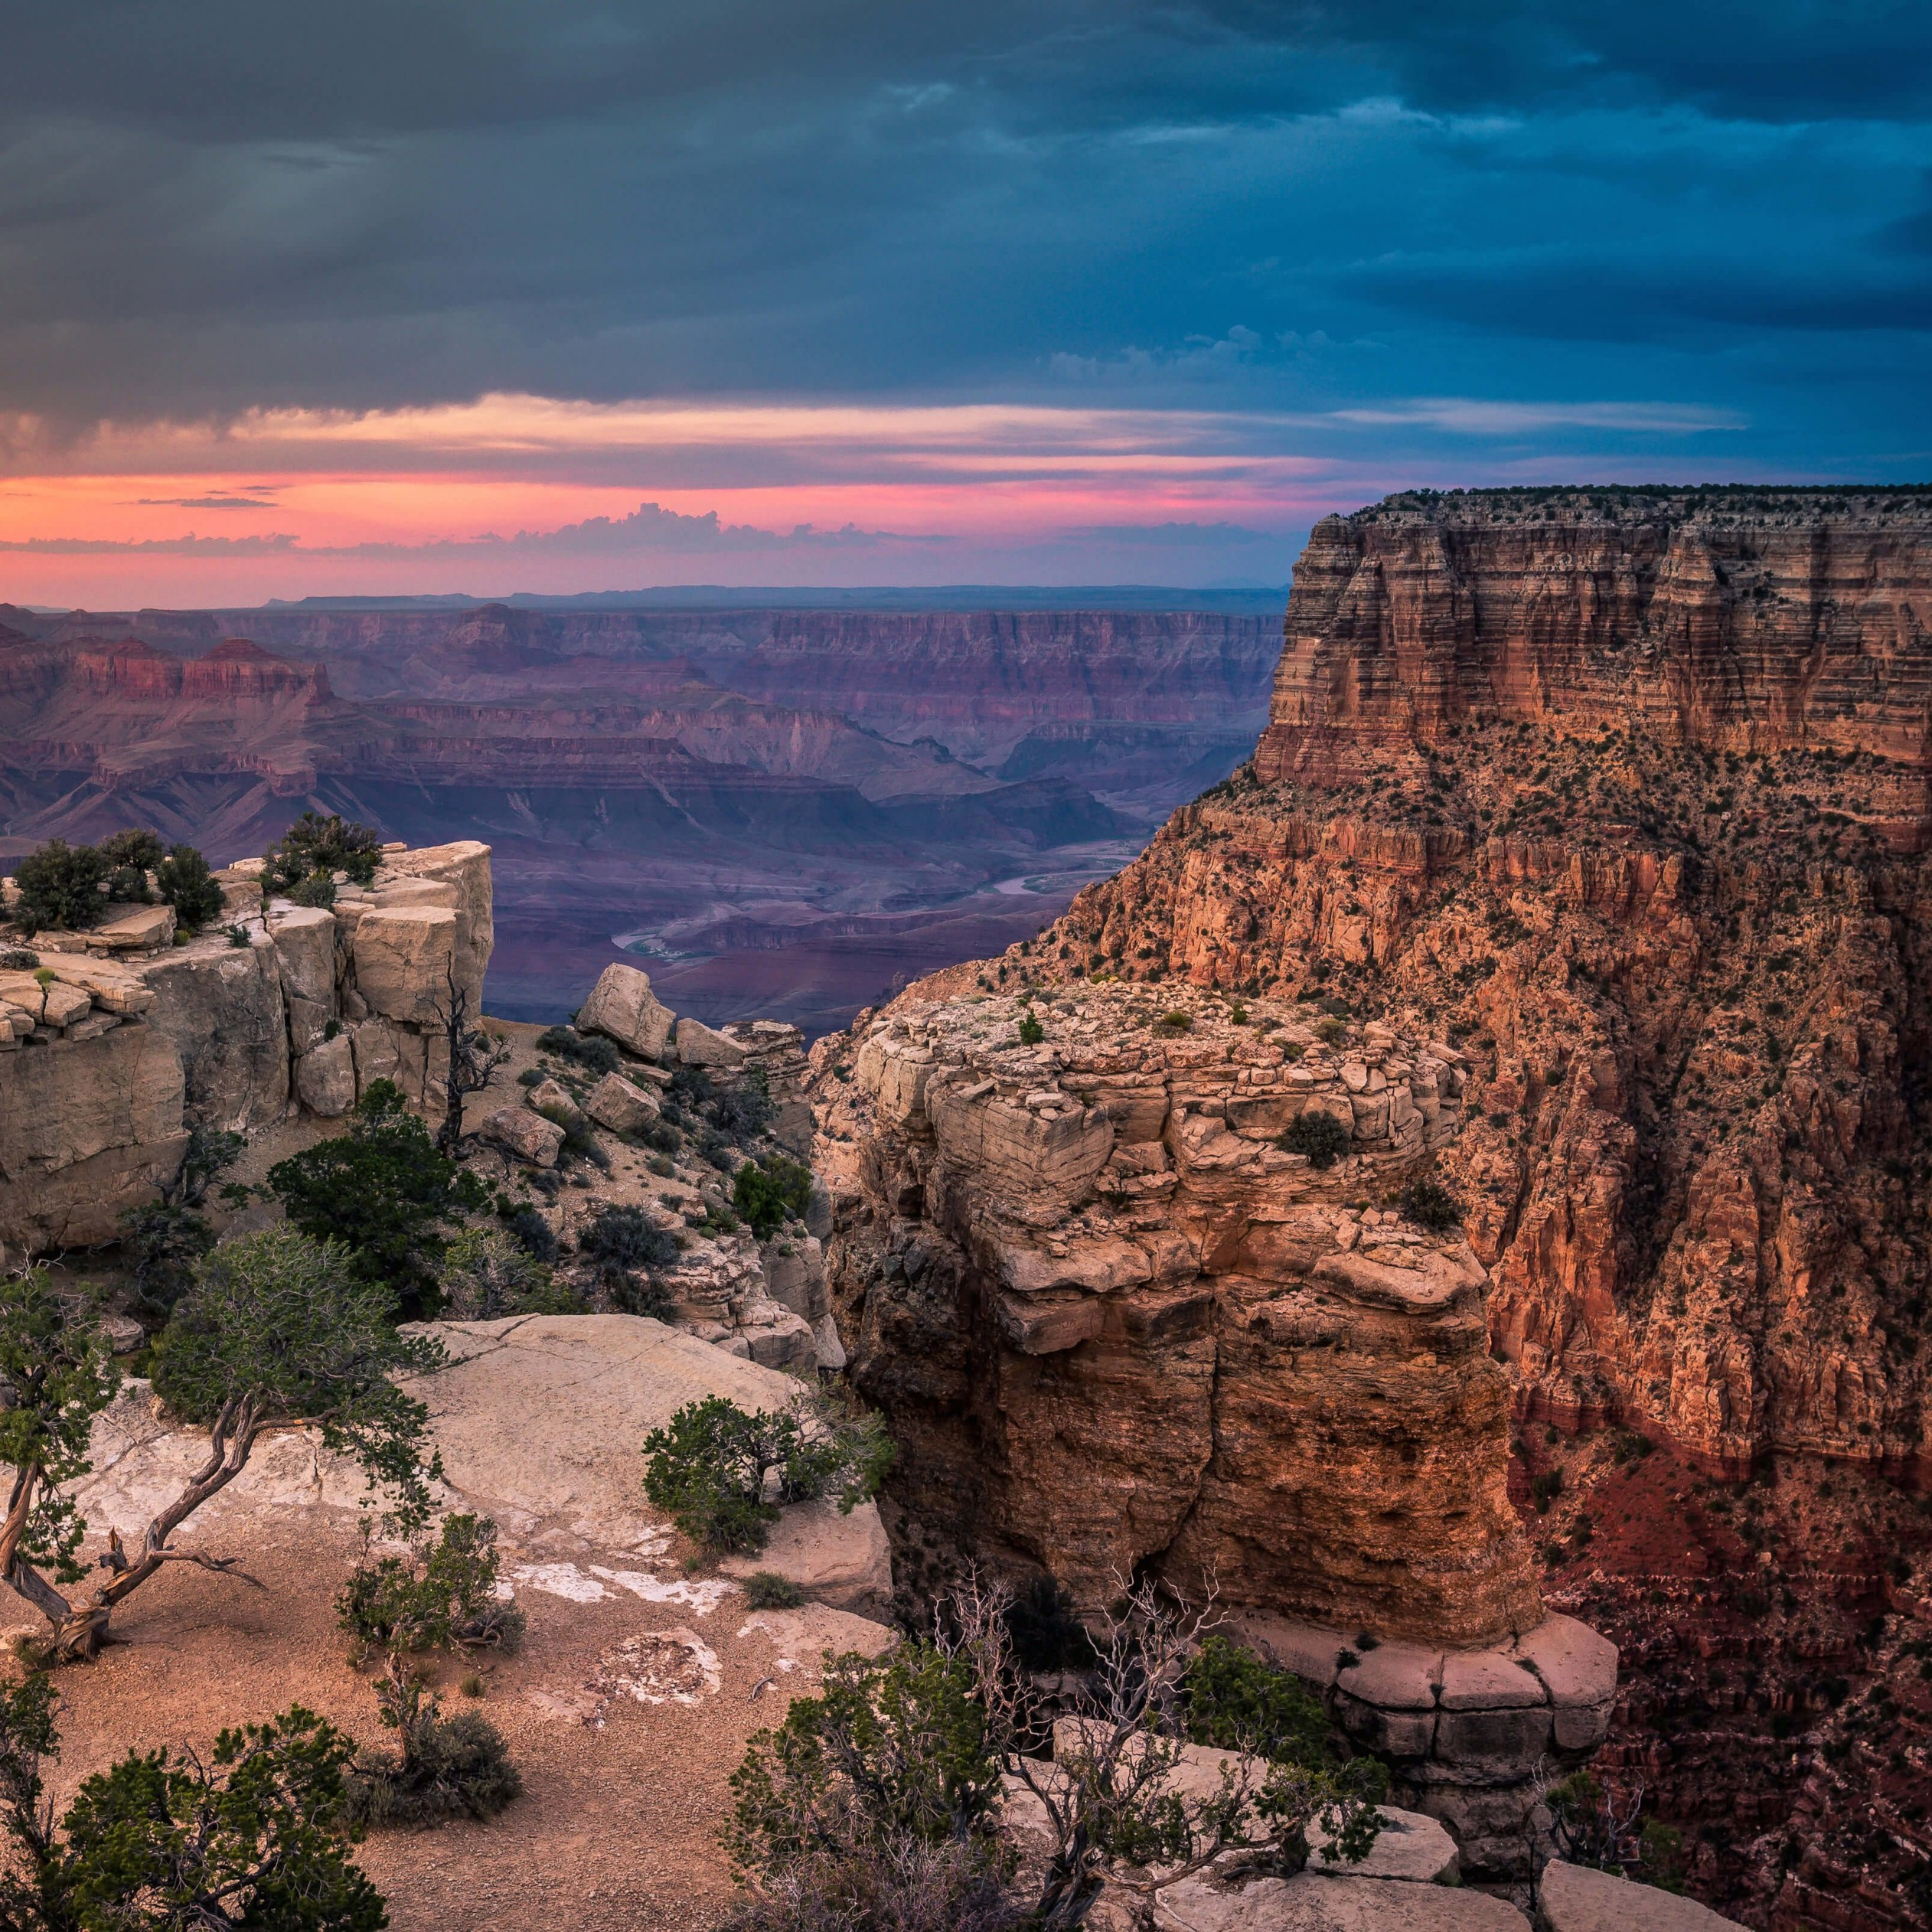 Sunset At The Grand Canyon Wallpaper for Apple iPad mini 2